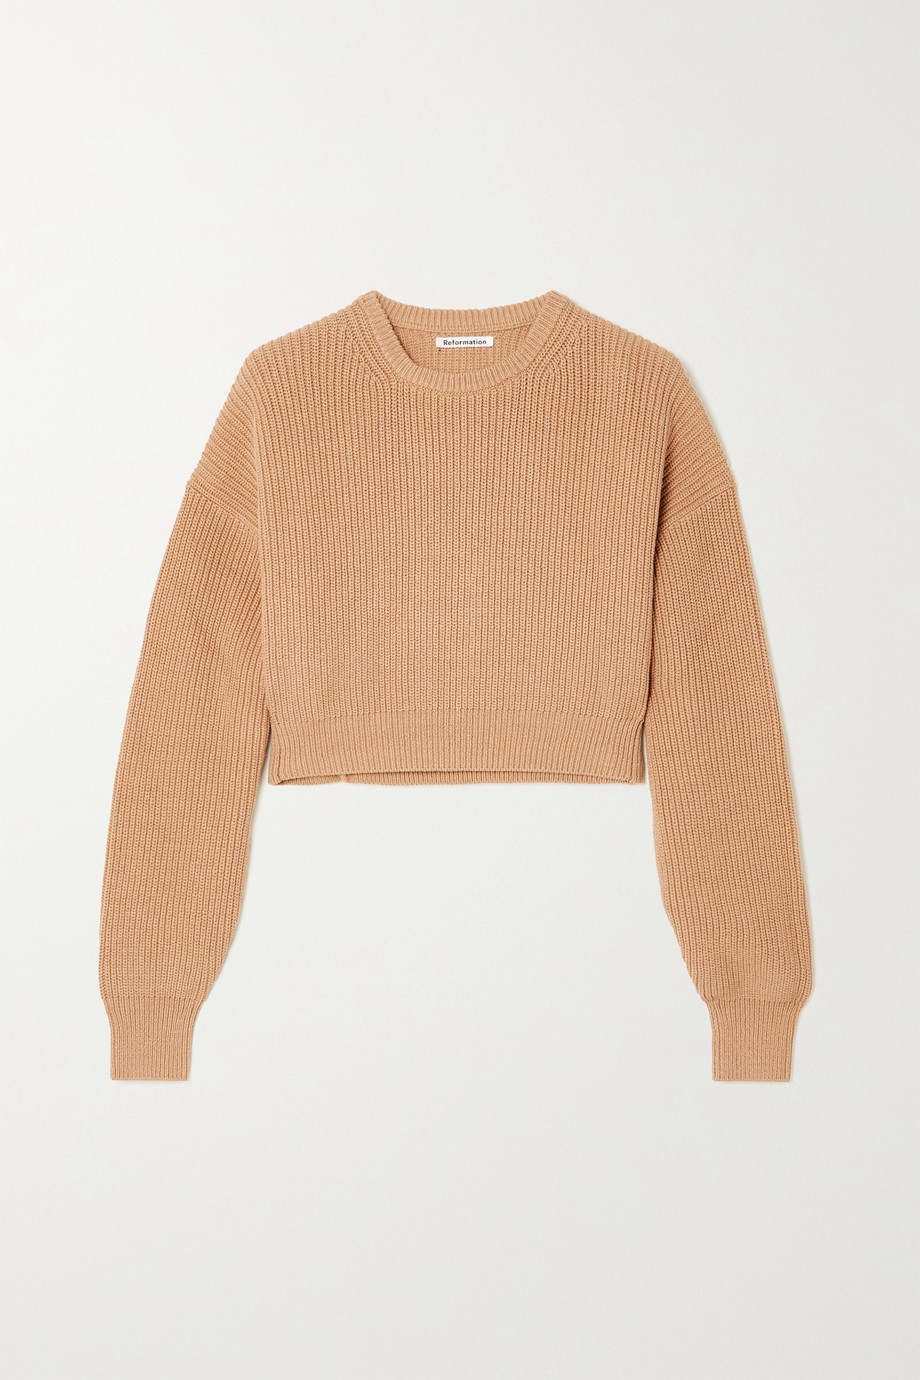 Reformation Sami cropped ribbed organic cotton sweater